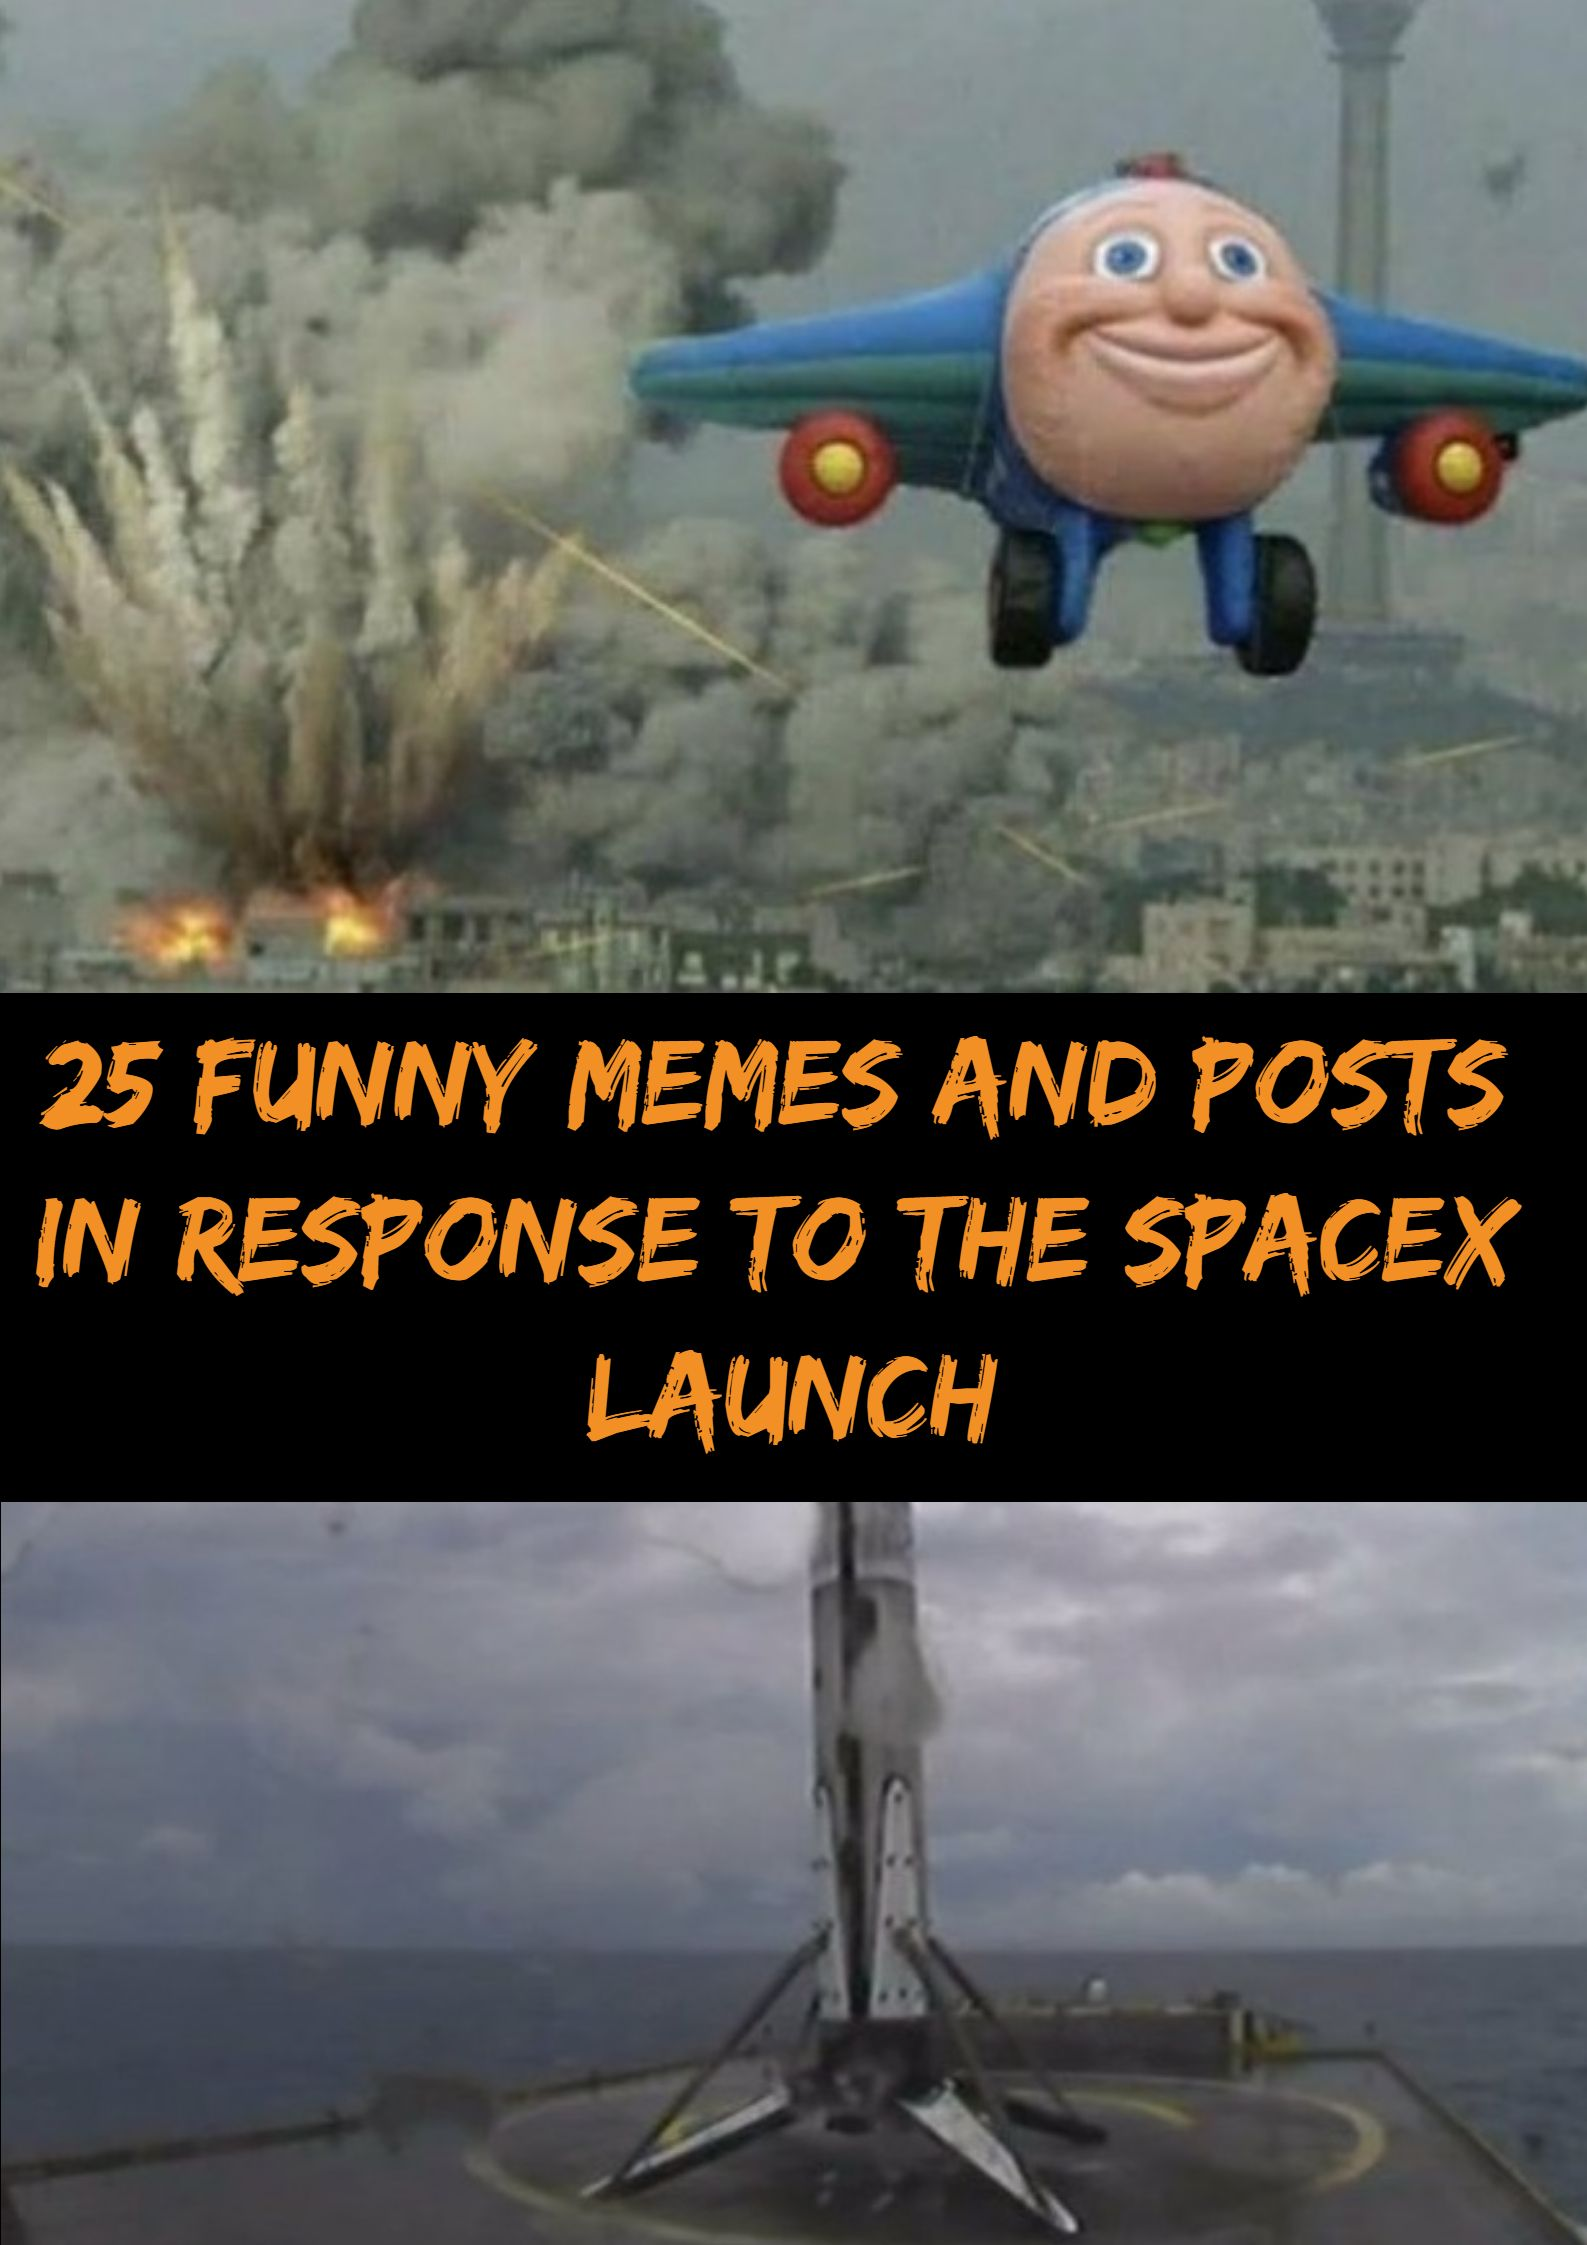 25 Funny Memes And Posts In Response To The Spacex Launch Funny Funny Memes Fun Facts